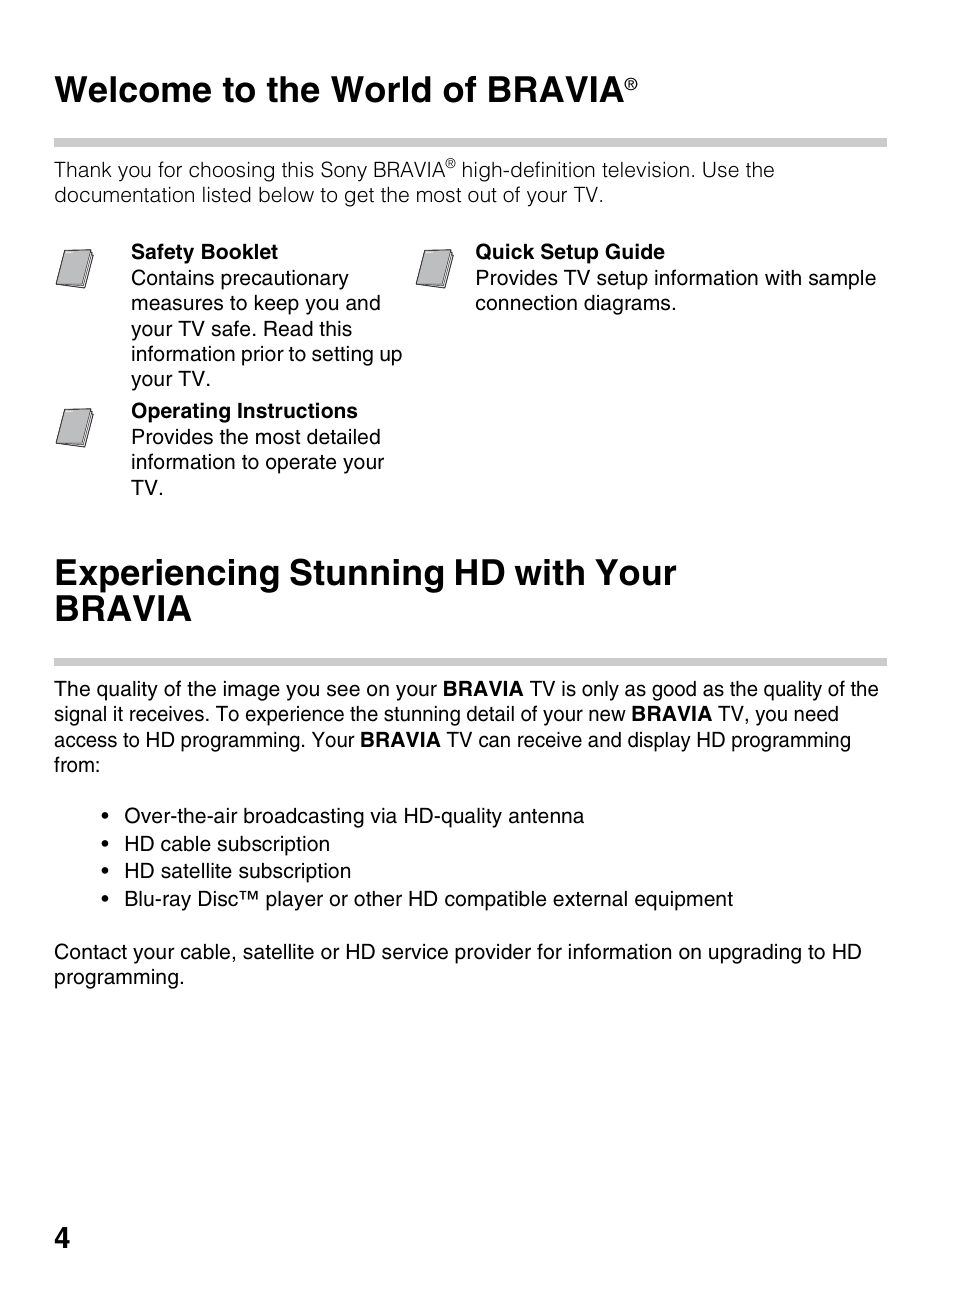 Introducing your new bravia, Welcome to the world of bravia